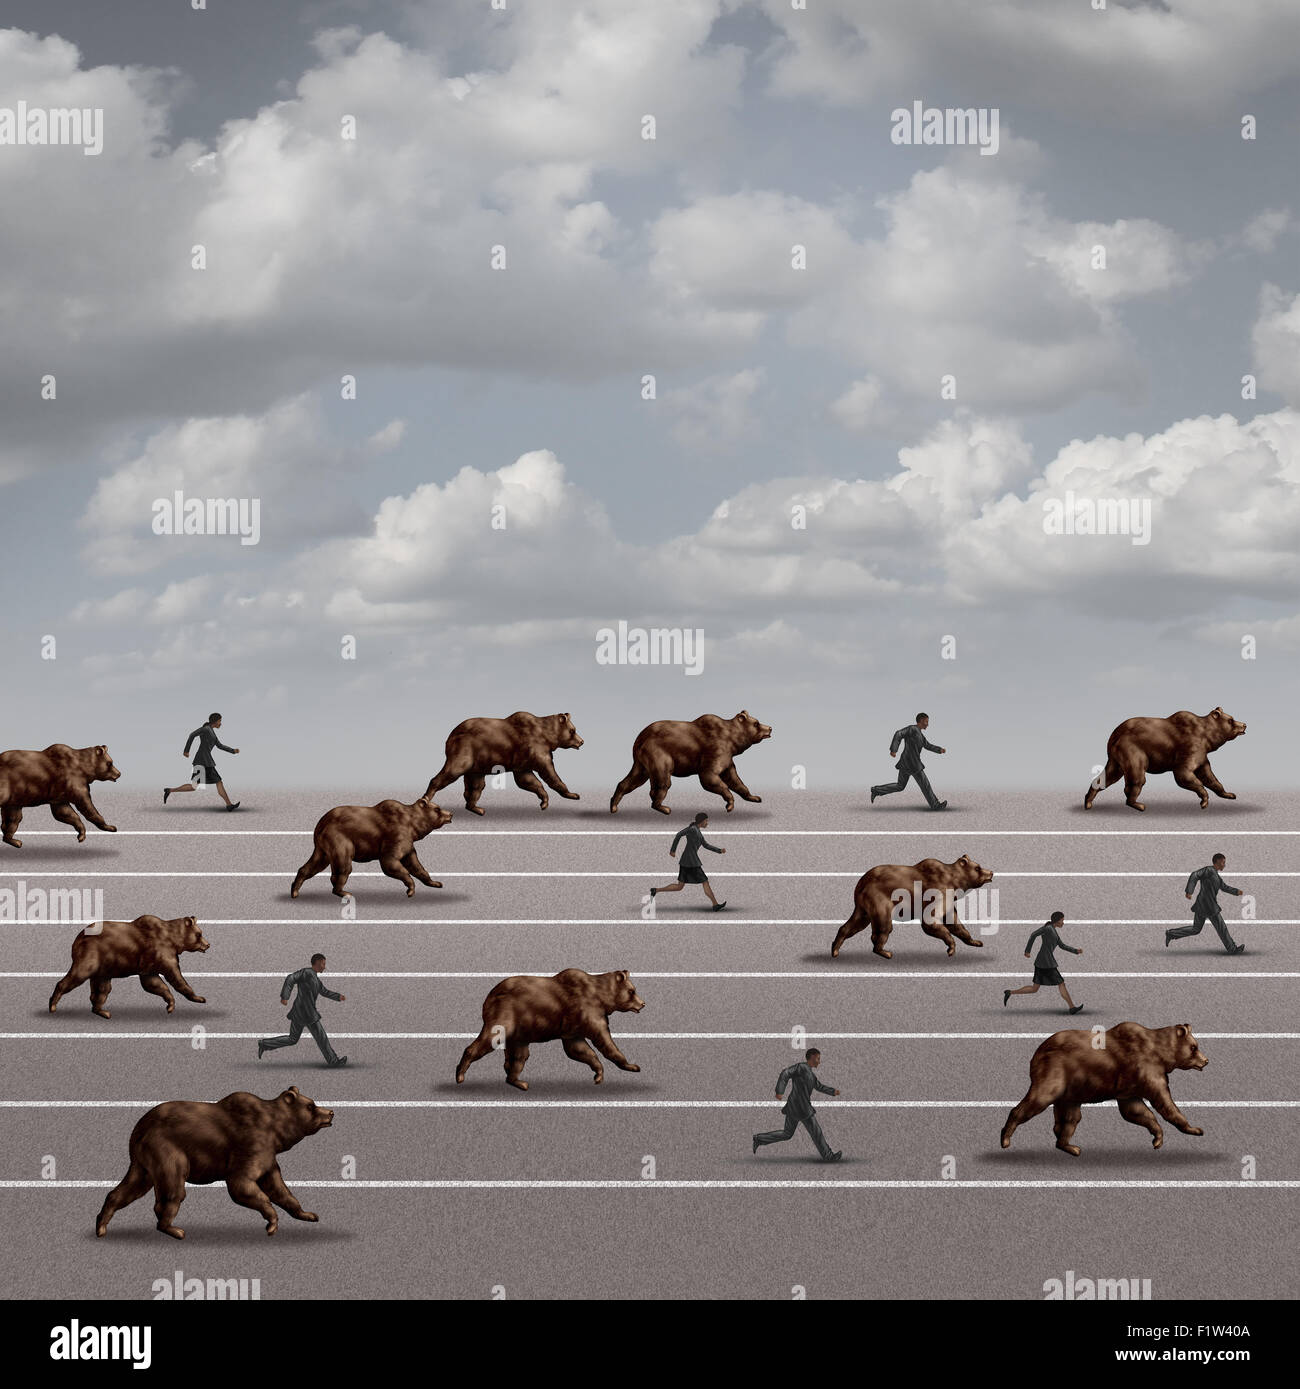 Bear market run business concept as a symbol for declining stock market loss and economy risk as a group of bears - Stock Image